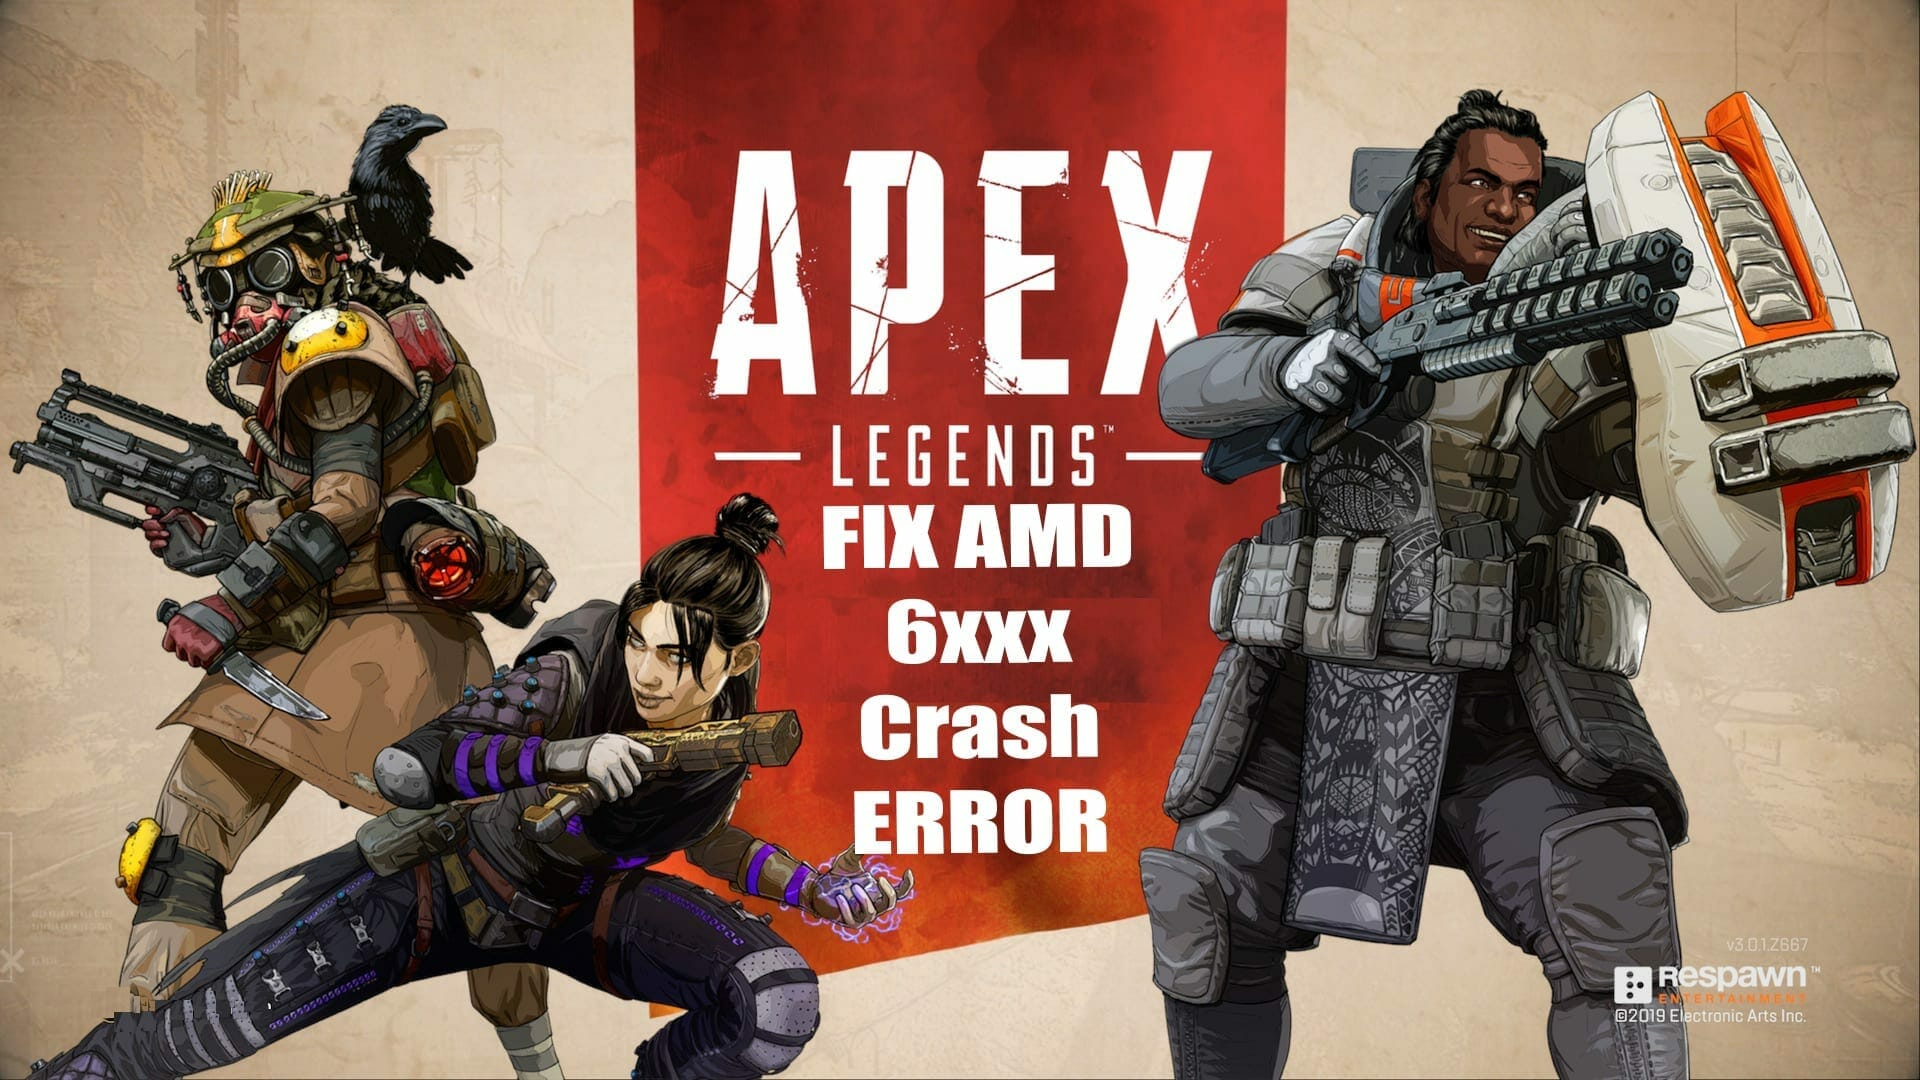 Apex Legends, Titanfall 2 Score Impressive Player Counts